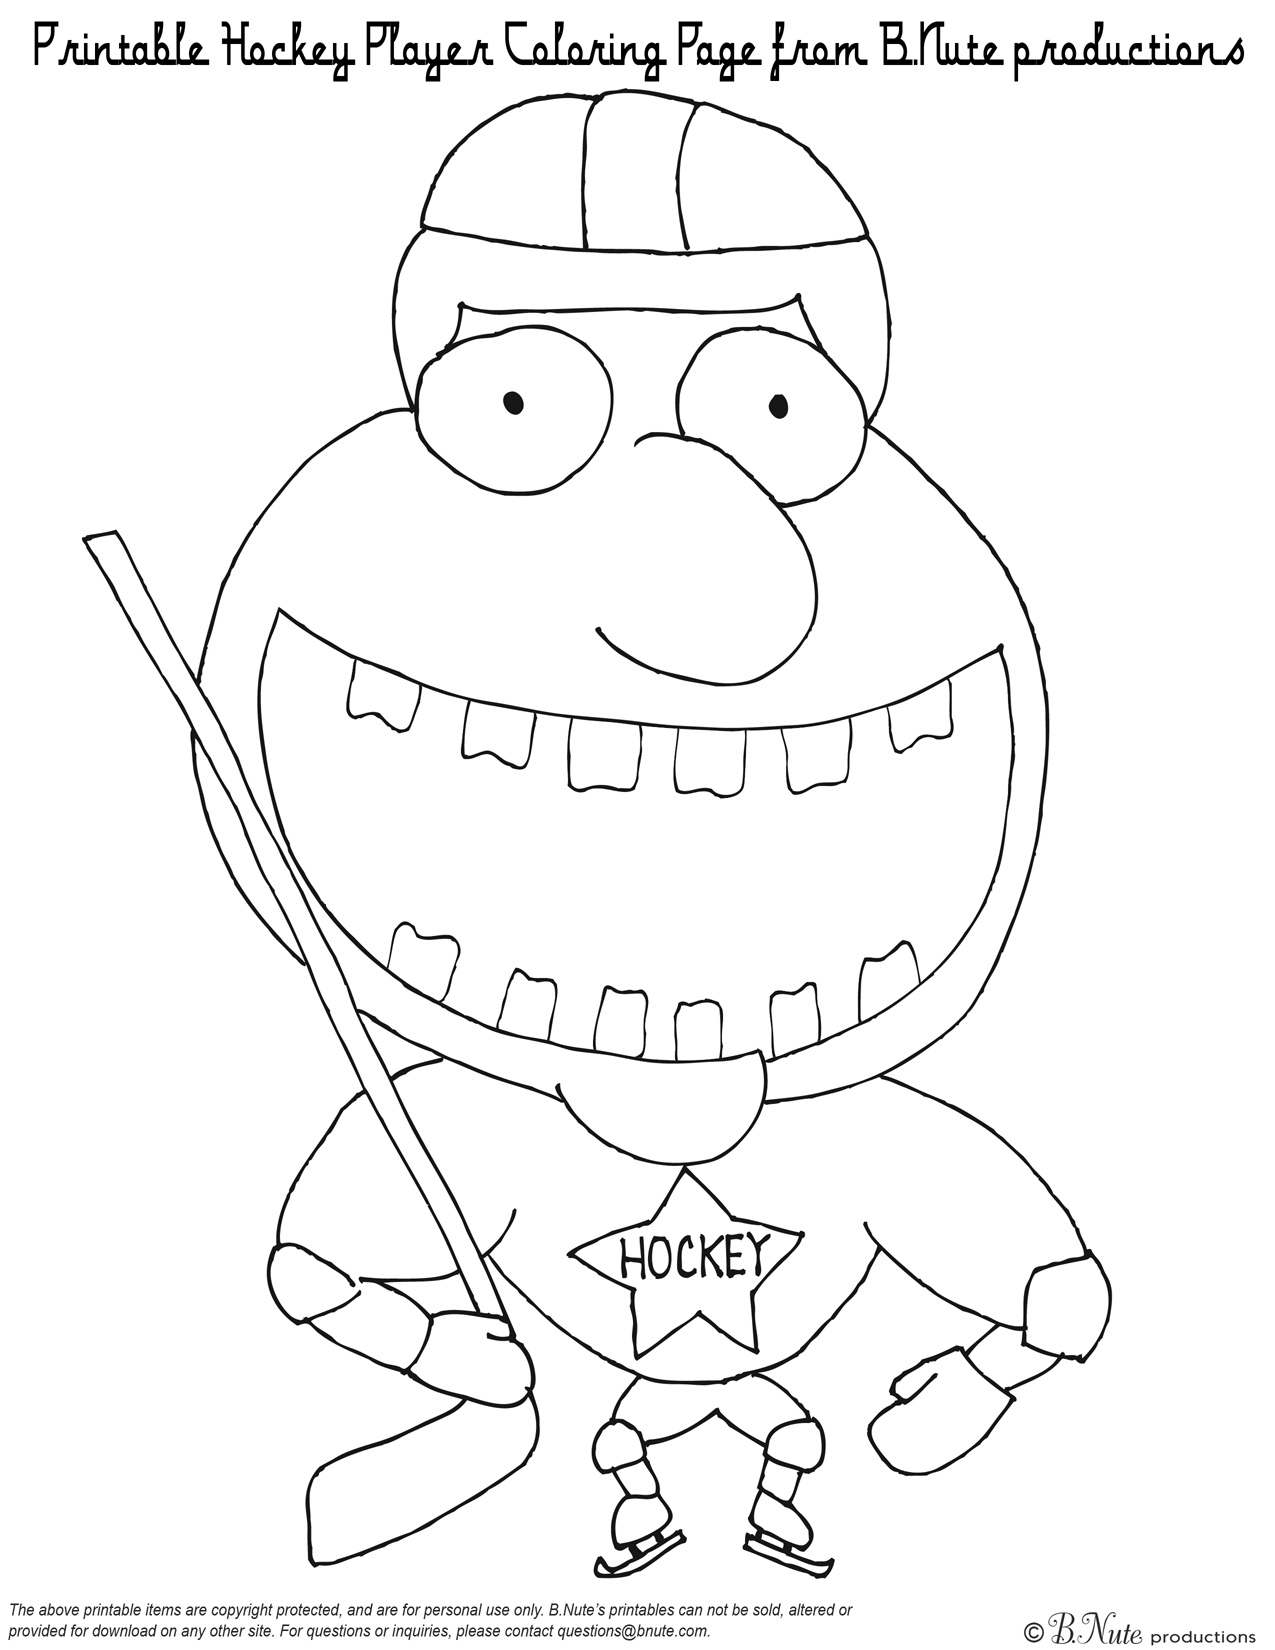 hockey coloring pages printable - hockey player coloring pages coloring pages